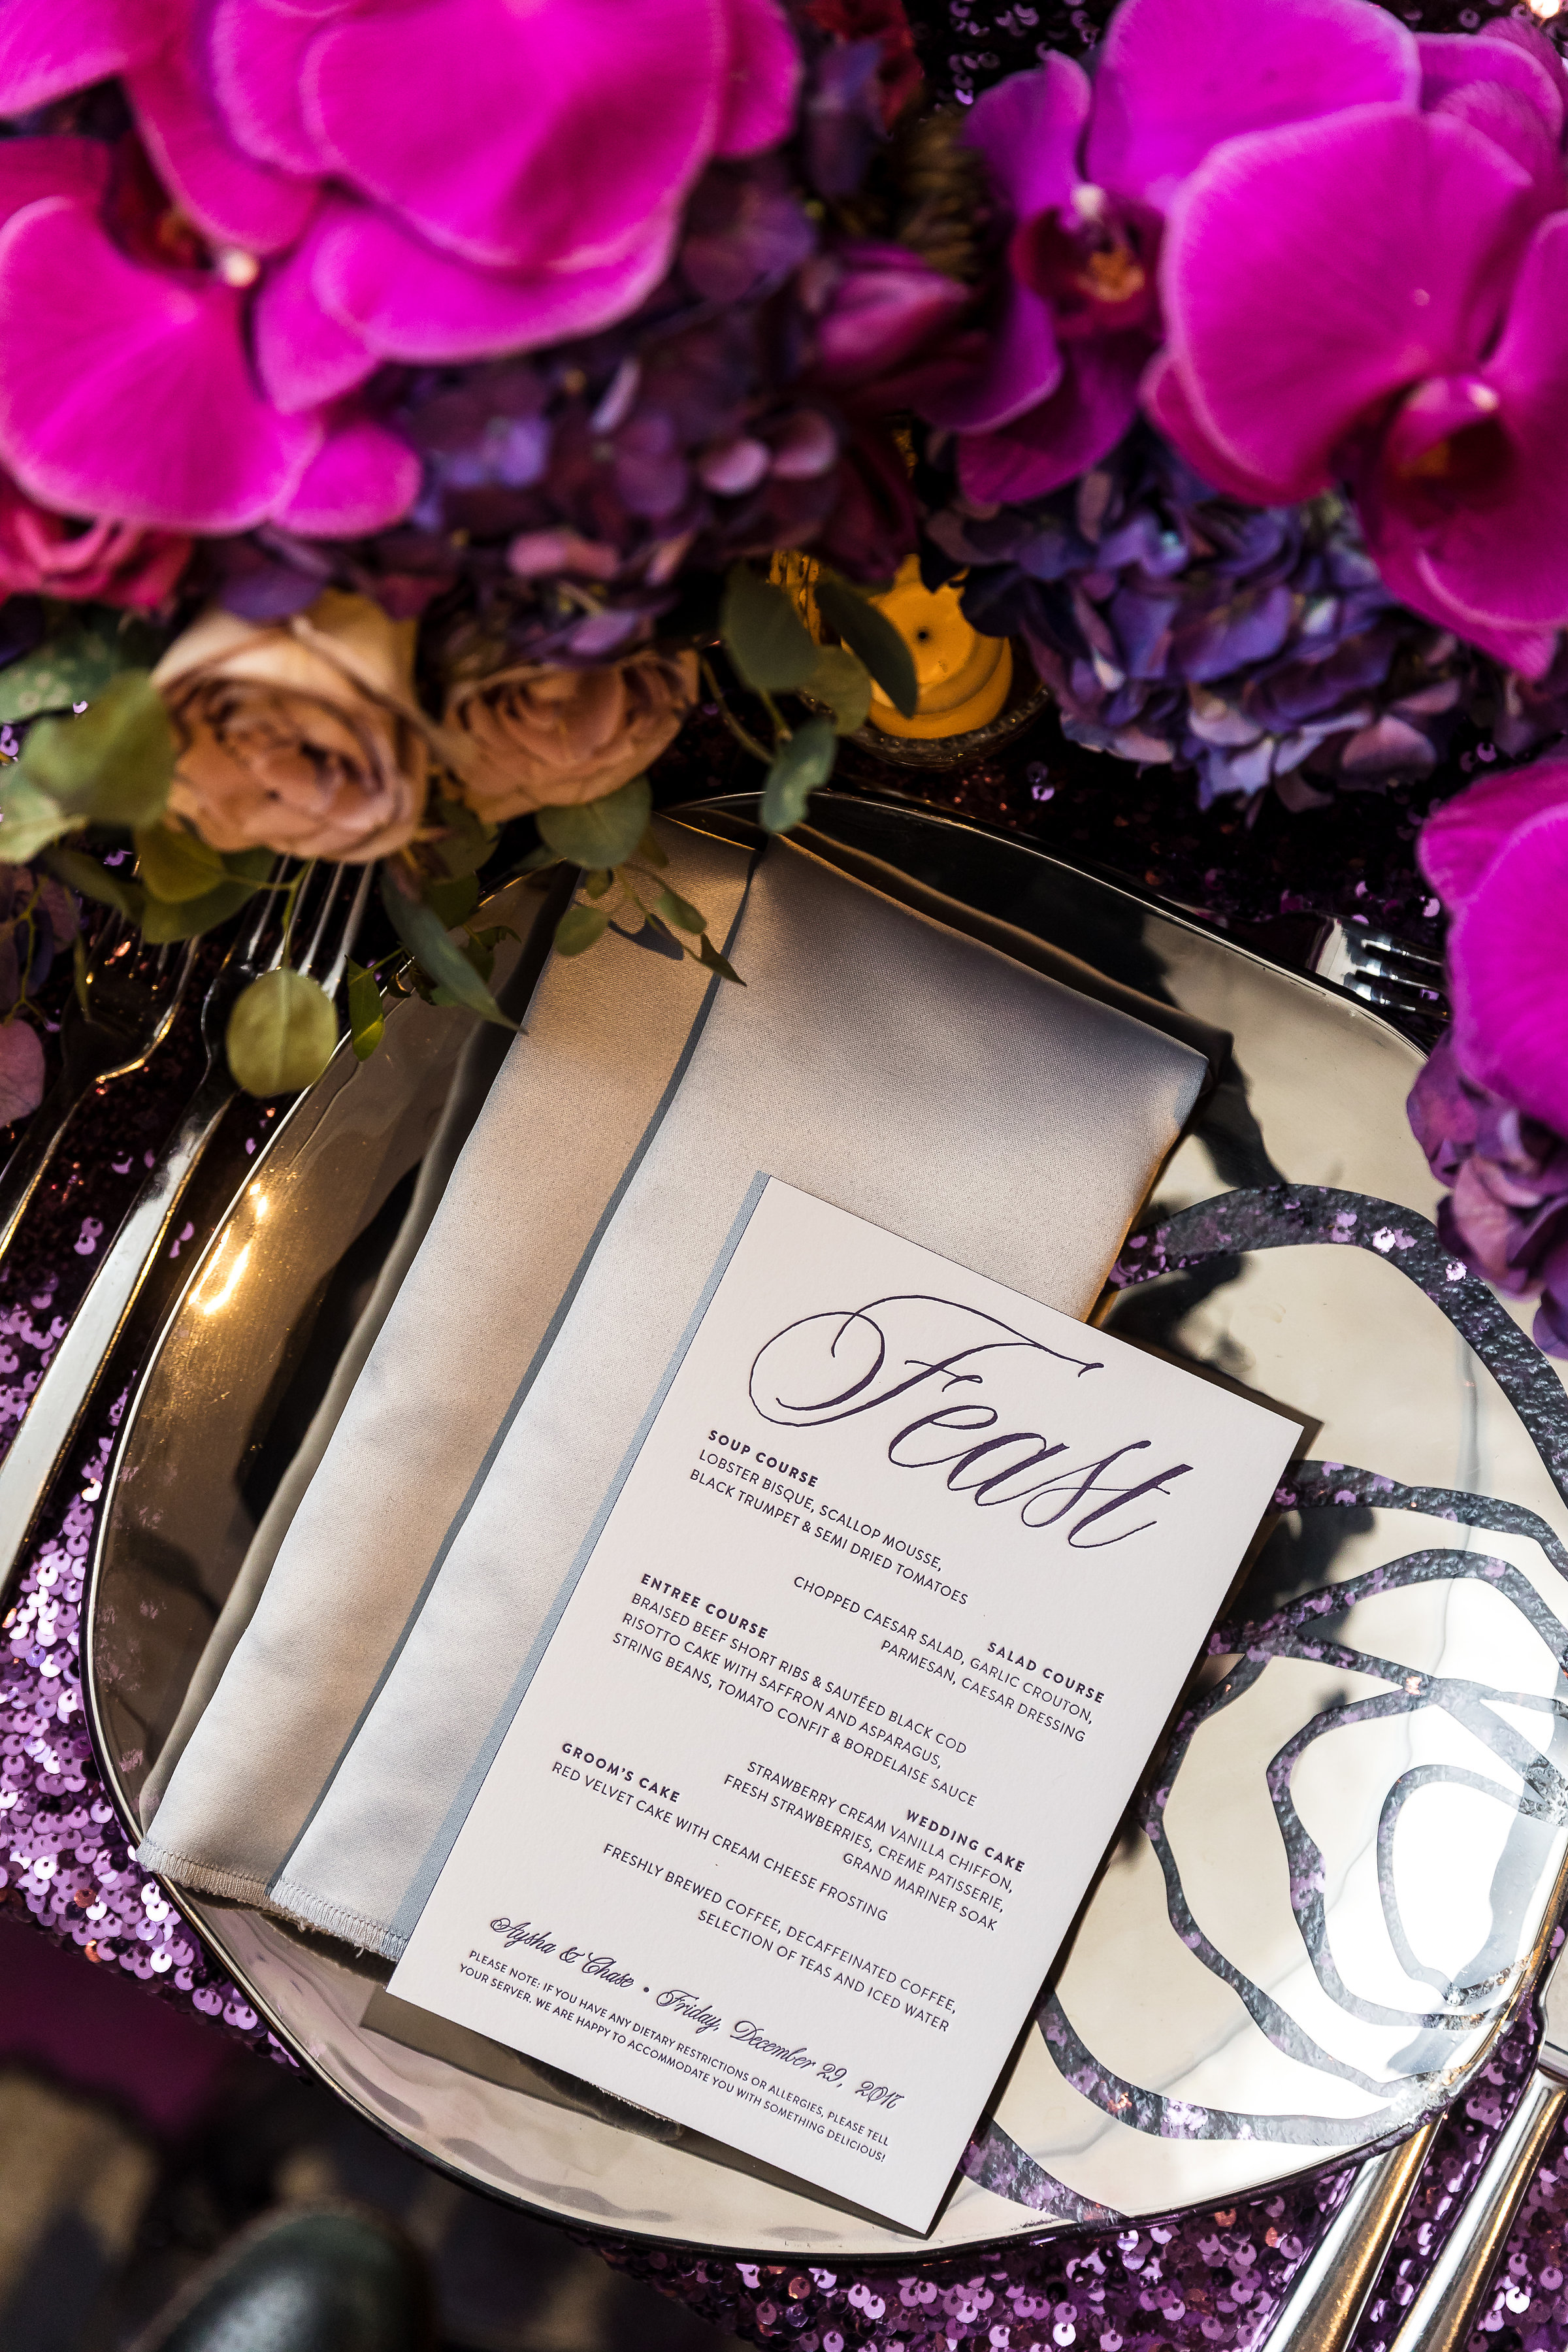 Luxe letterpress menus on purple sequence linens and folder napkin.Wedding Planner: Andrea Eppolito Events    Photography  Brian Leahy    Videography  HOO Films    Venue & Catering: Mandarin Oriental / Waldorf Astoria   Floral & Decor: Destinations by Design    Lighting: LED Unplugged    Music: DJ Breeze II    Hair & Make Up: Amelia C & Co    Invitations by  Bliss & Bone    Menu and Escort Cards by  Meldeen